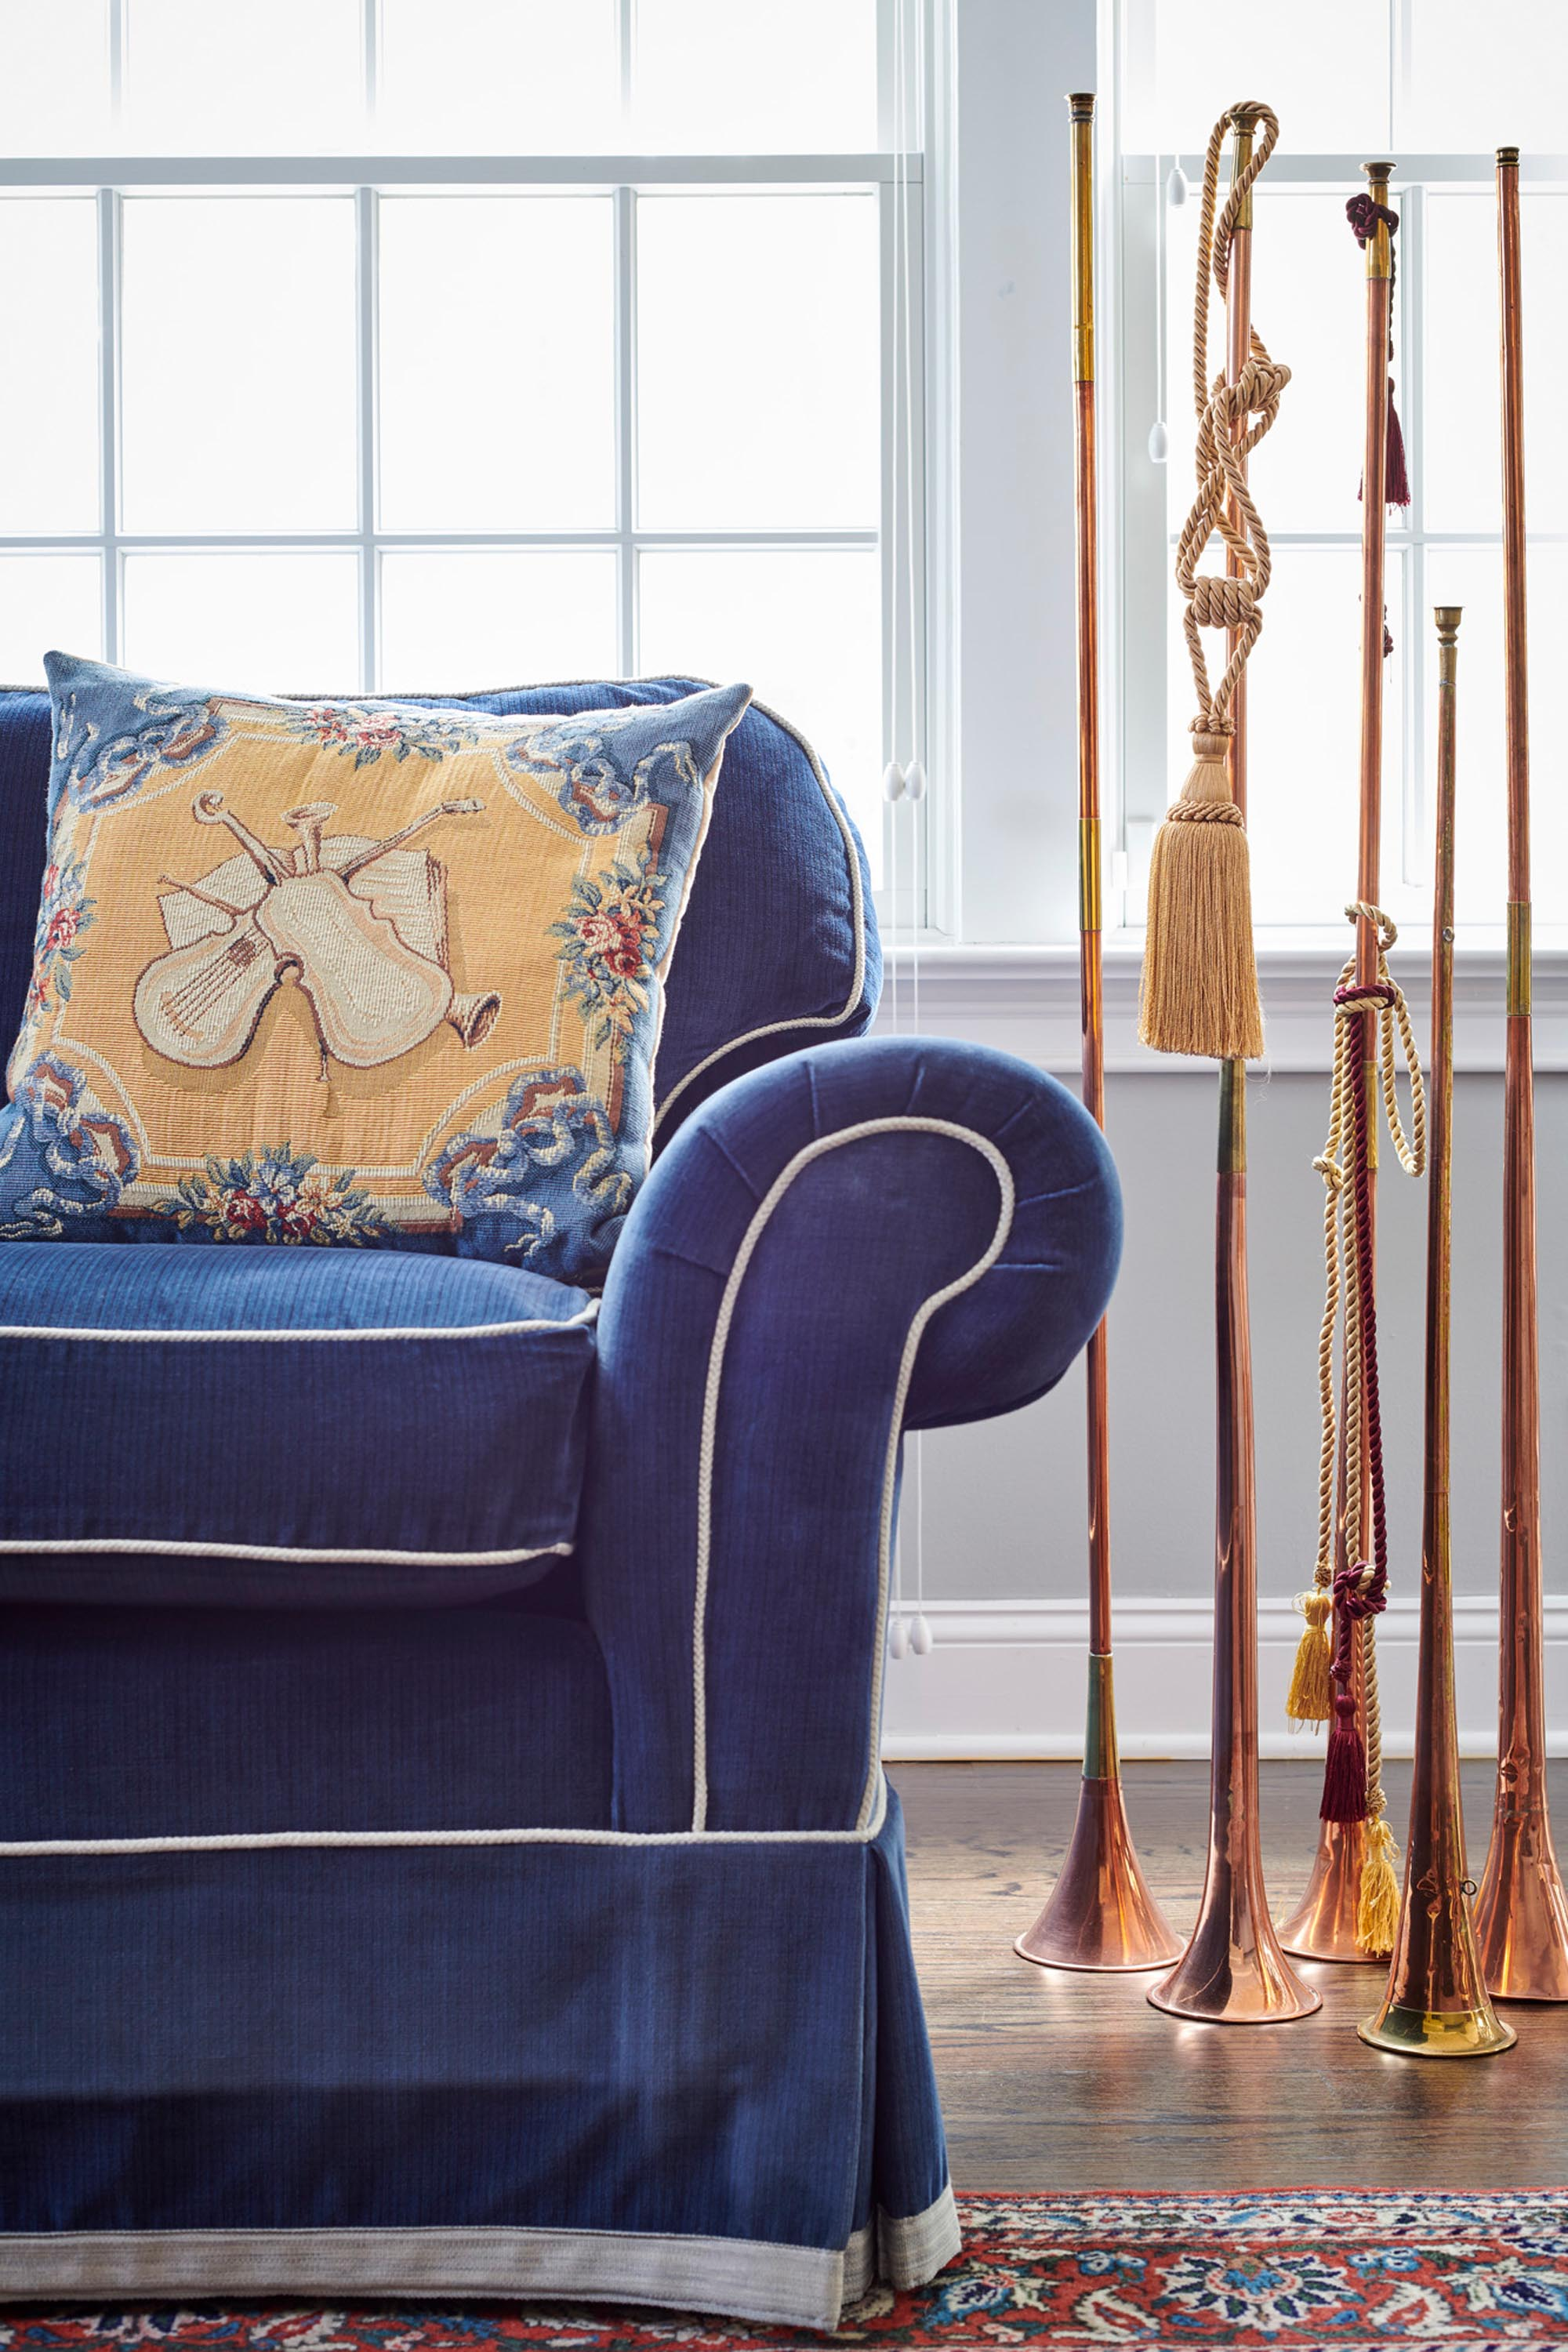 Custom blue sofa with tall brass decorative standing horns